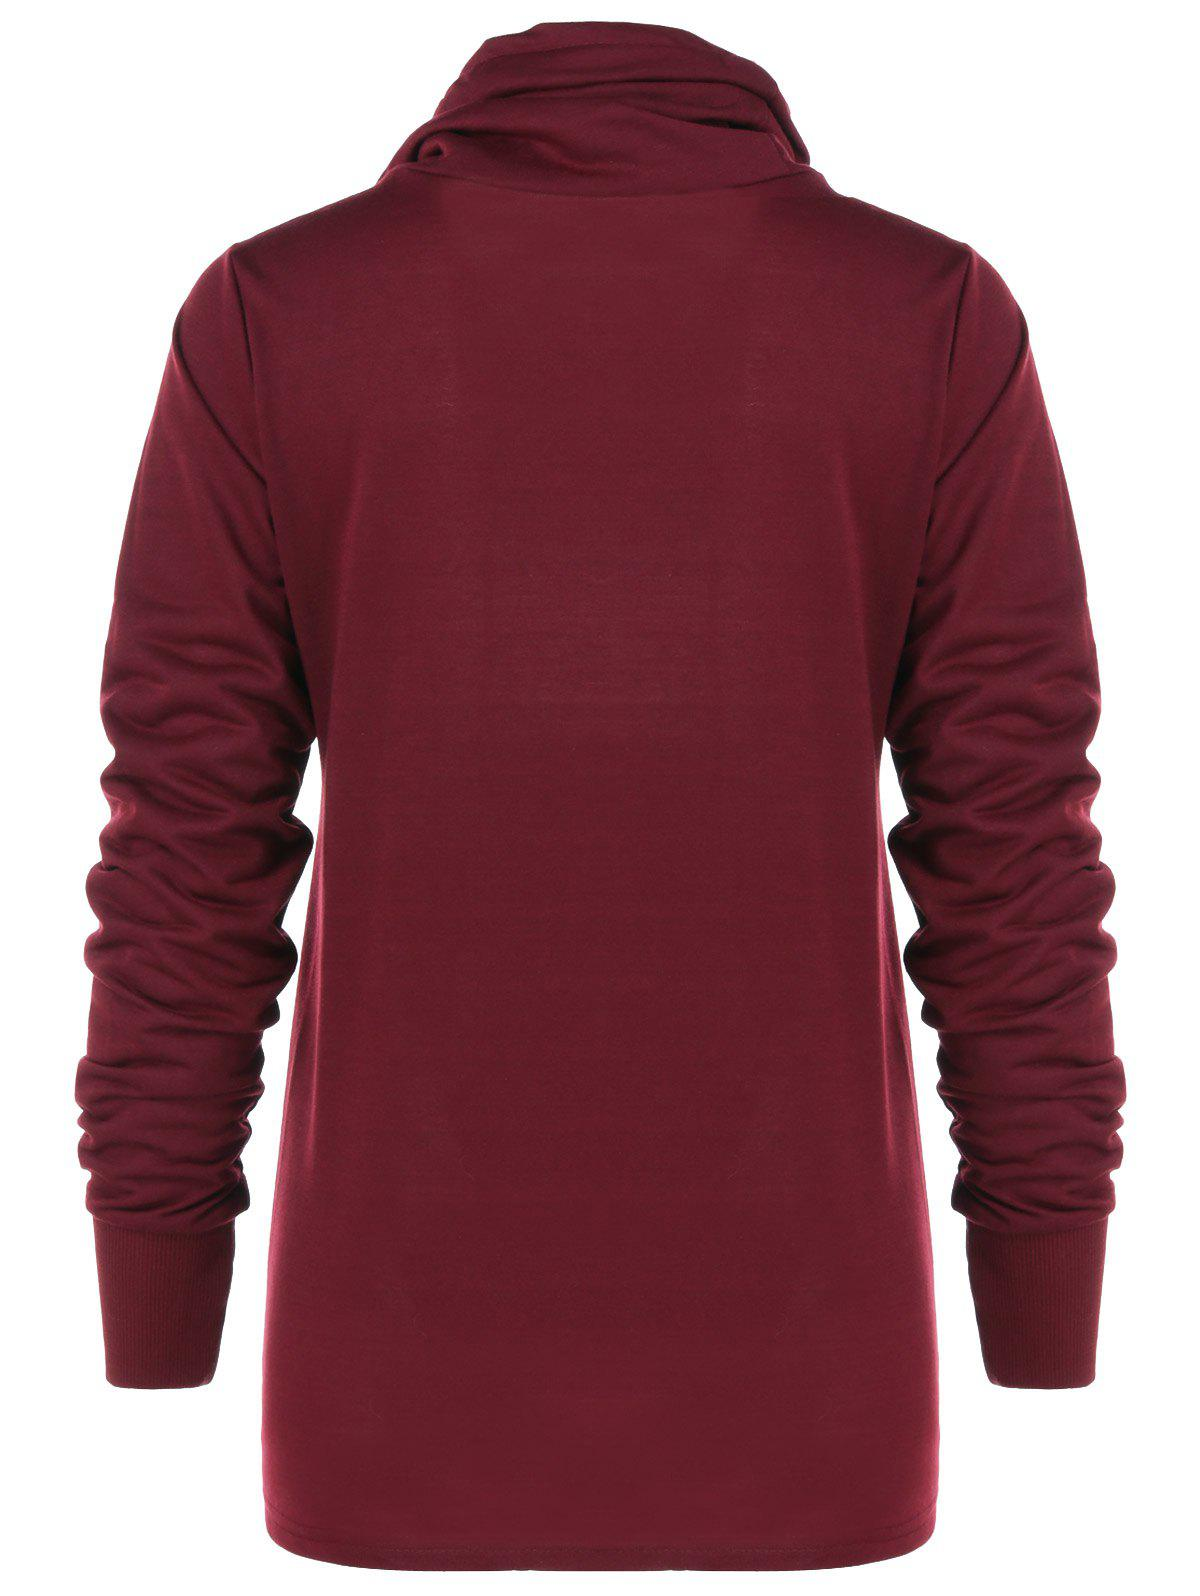 Cowl Collar Pullover Sweatshirt - WINE RED M